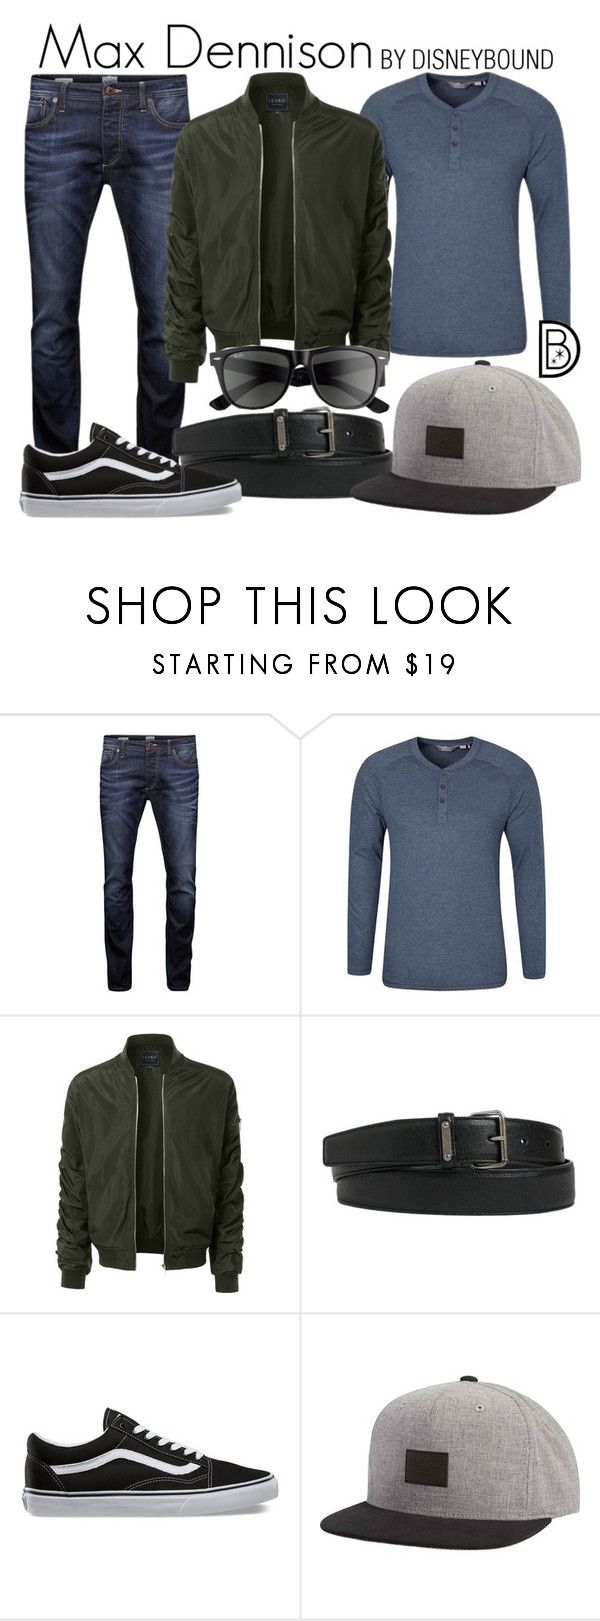 """""""Max Dennison"""" by leslieakay ❤ liked on Polyvore featuring Jack & Jones, LE3NO, Yves Saint Laurent, Vans, Billabong, Ray-Ban, Halloween, disney, disneybound and disneycharacter"""